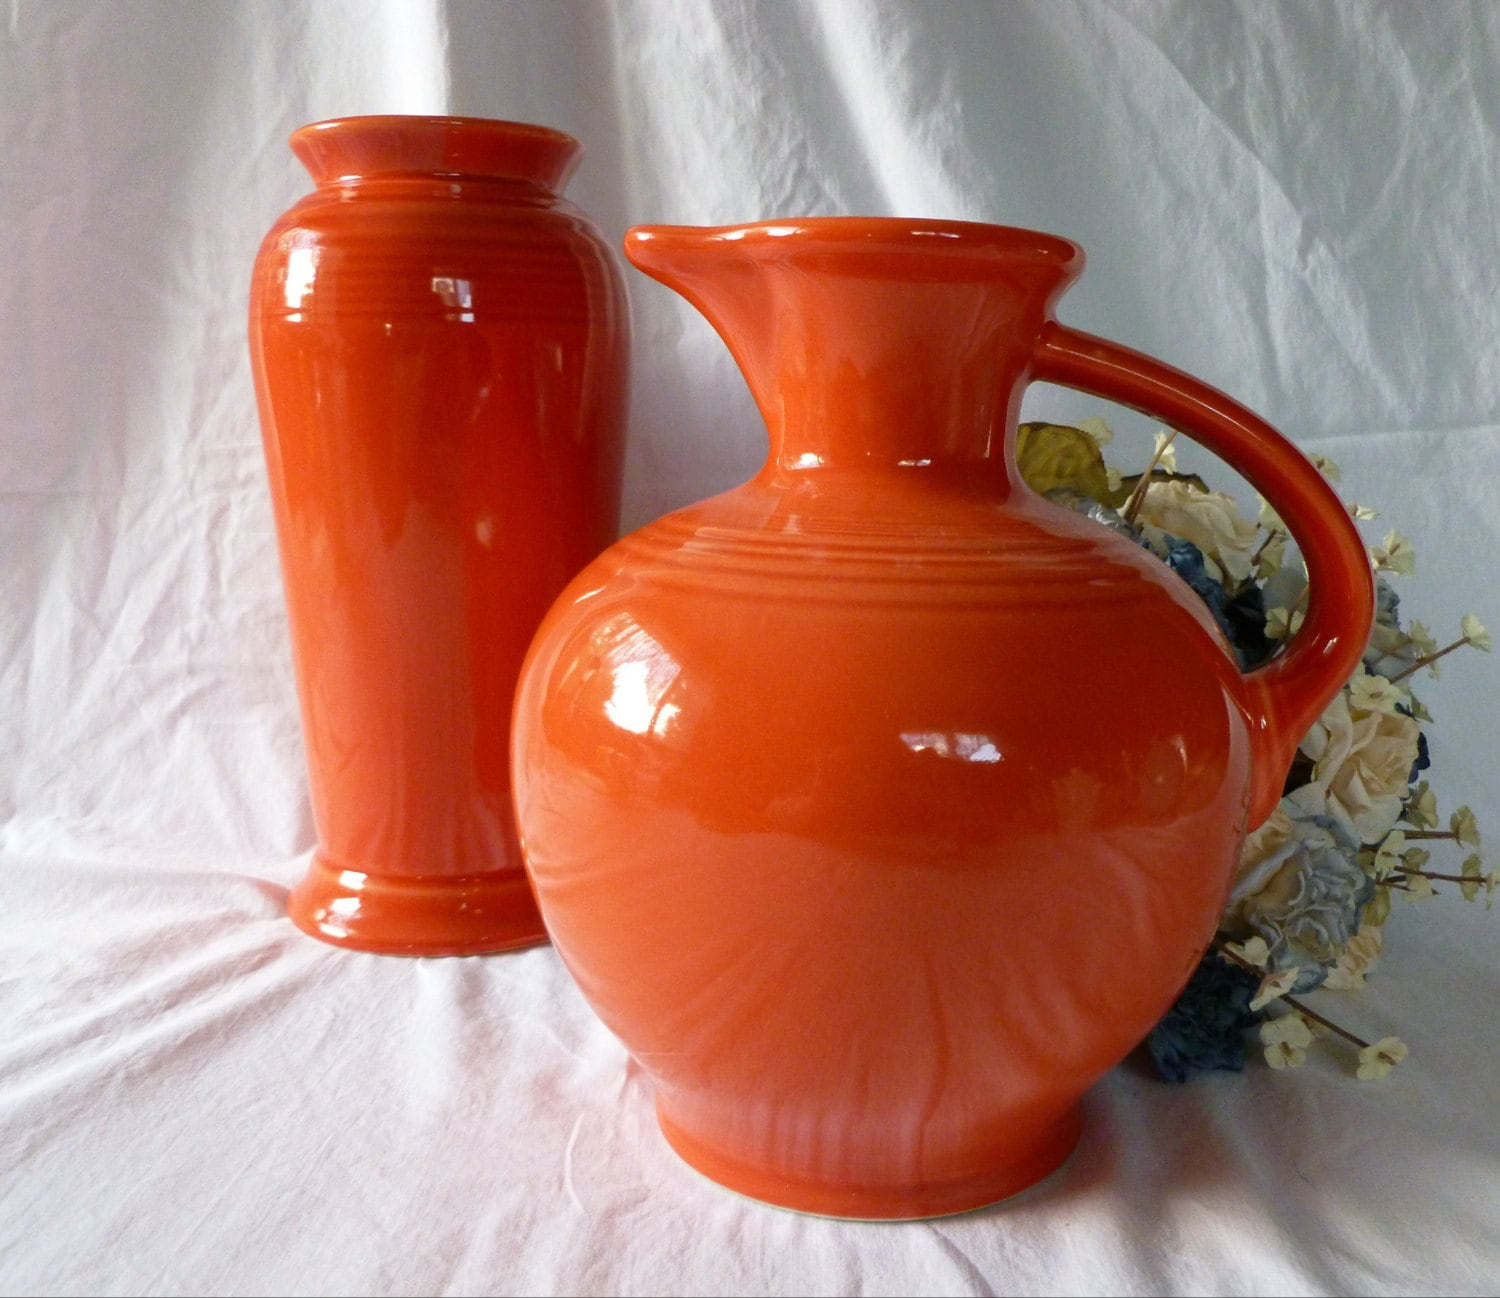 Vintage Orange Fiestaware Carafe Jug or Pitcher by Homer